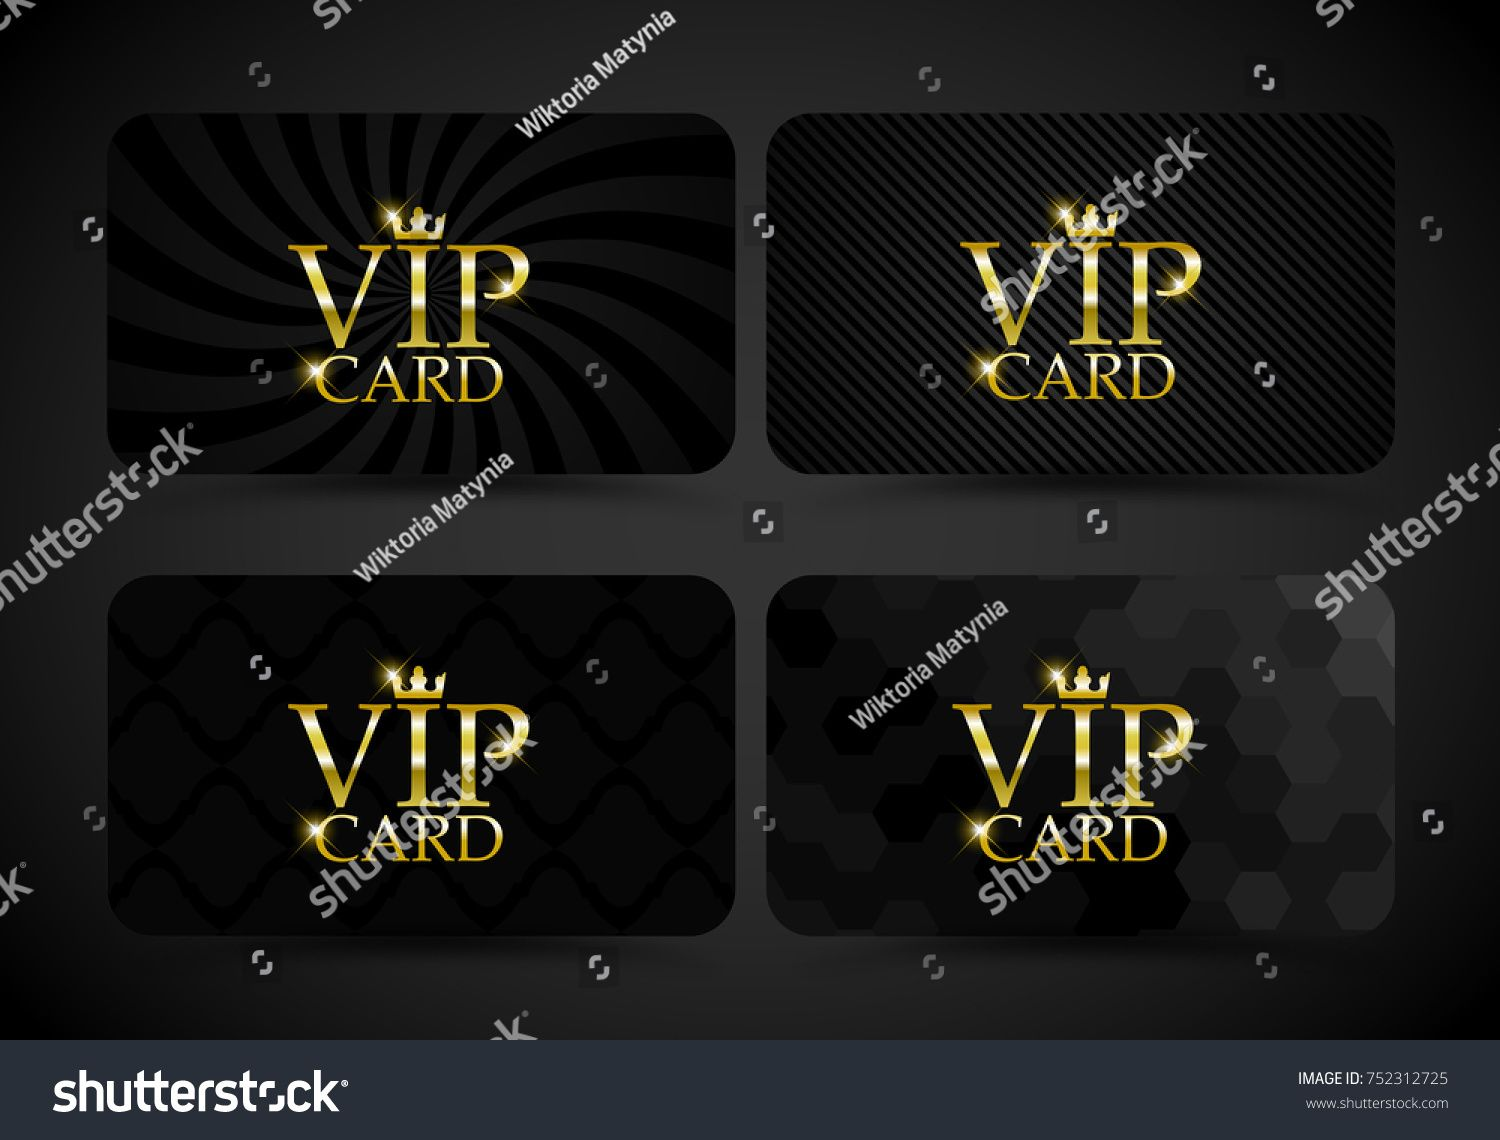 Vip Card Set Vector Vip Card Luxury Background Gold Vector Design Premium Exclusive Platinum Set Golden Club Vip Card Invitation Card Design Cards